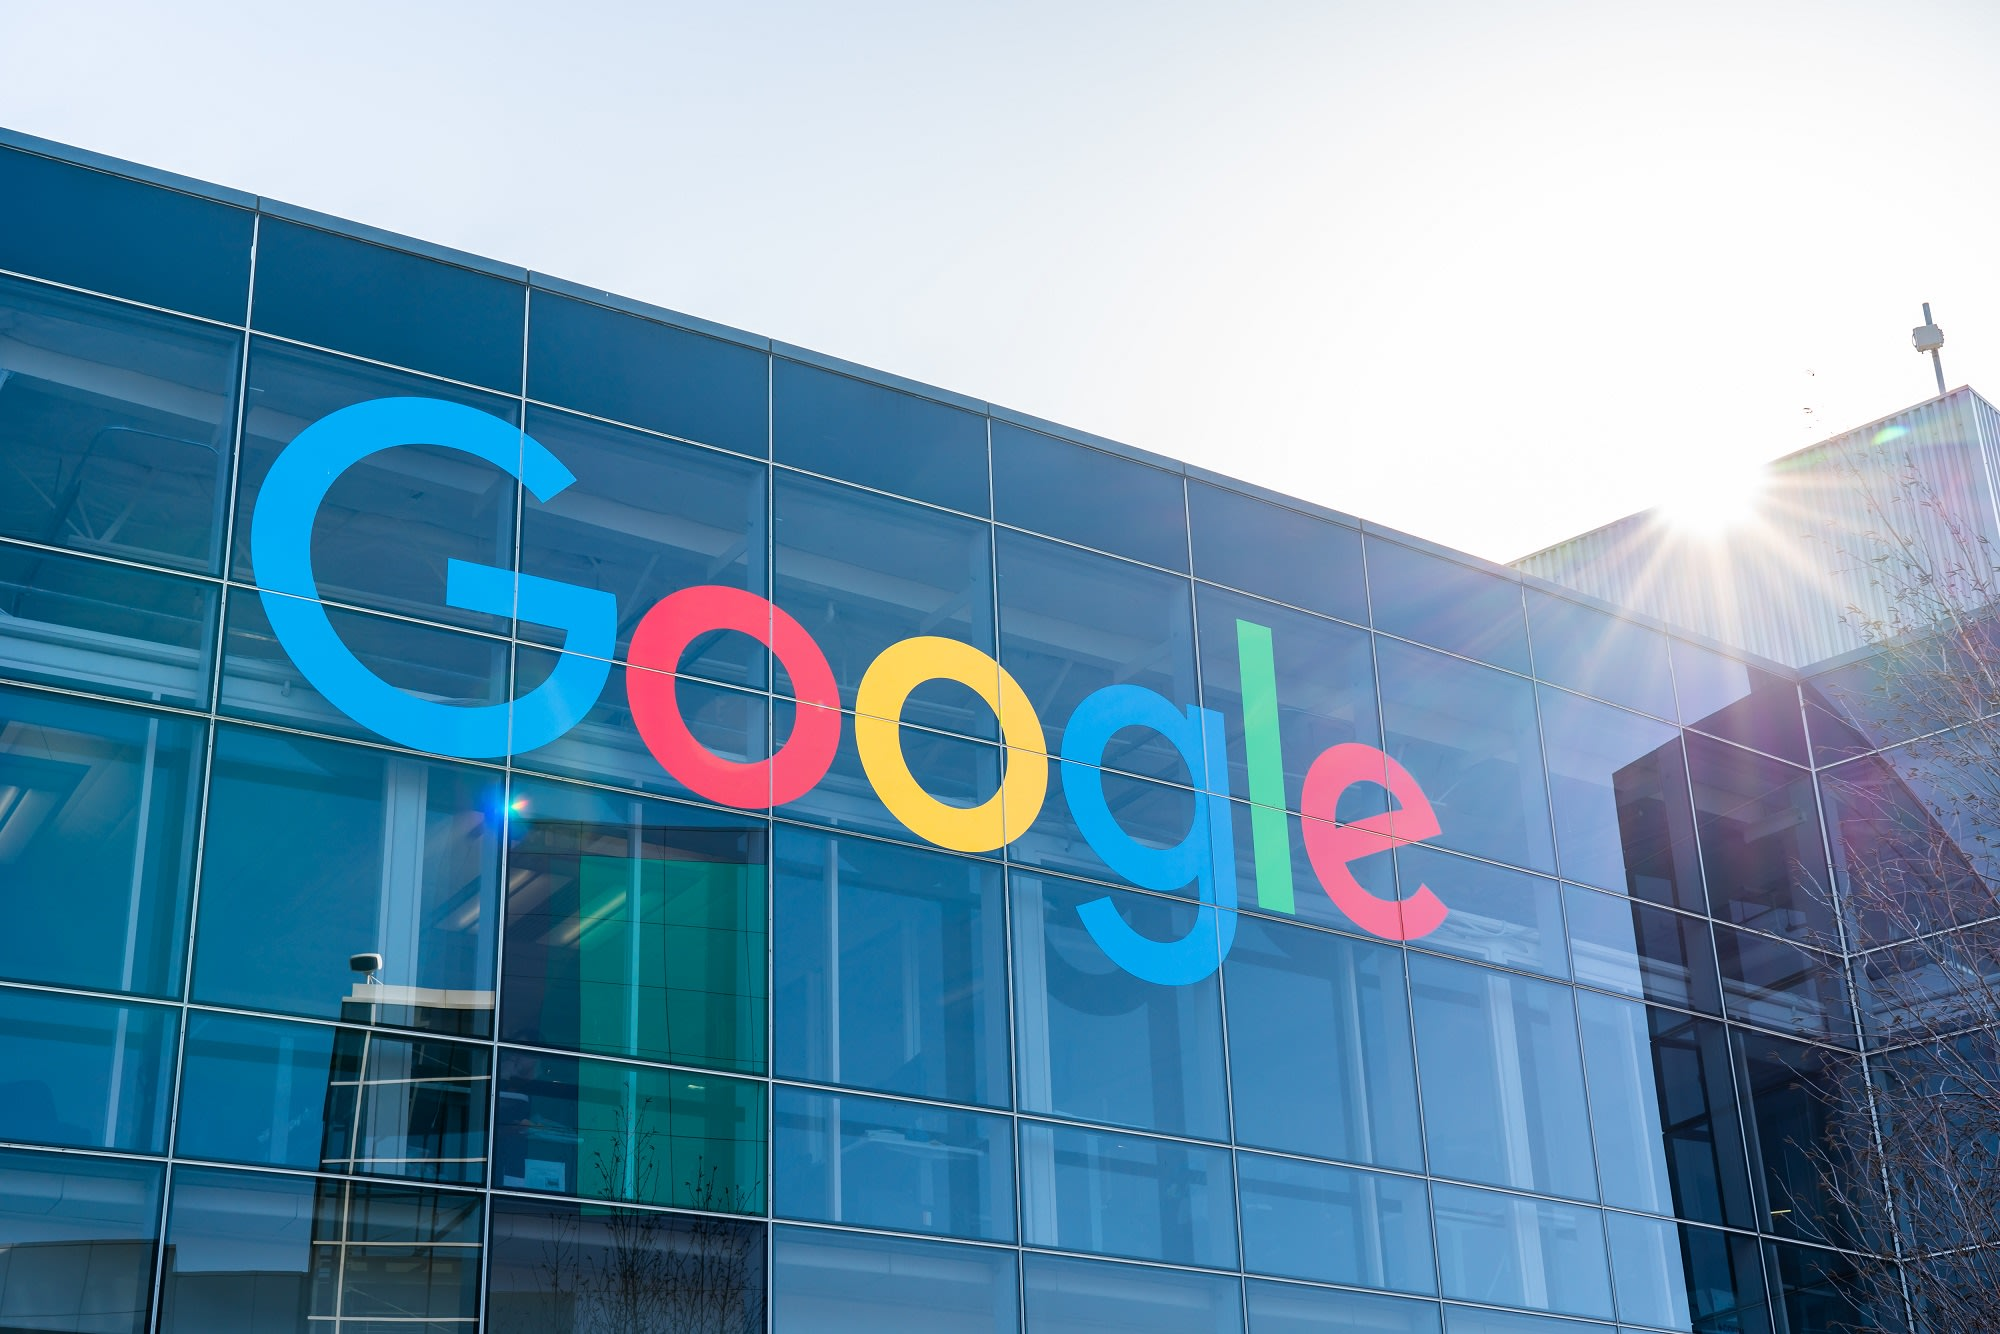 us.-justice-department's-google-lawsuit-expected-in-weeks-ahead,-sources-say